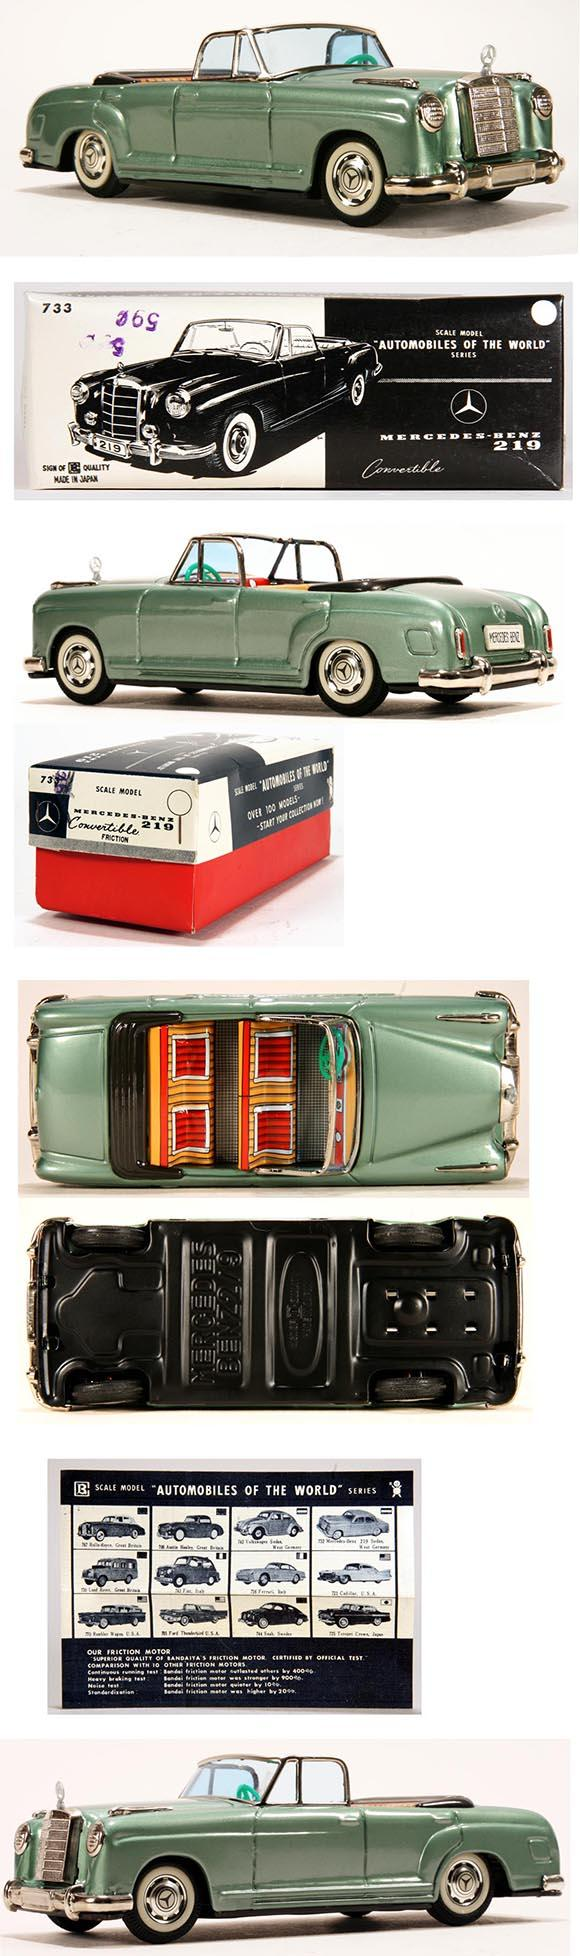 1959 Bandai, Mercedes-Benz 219 Convertible in Original Box